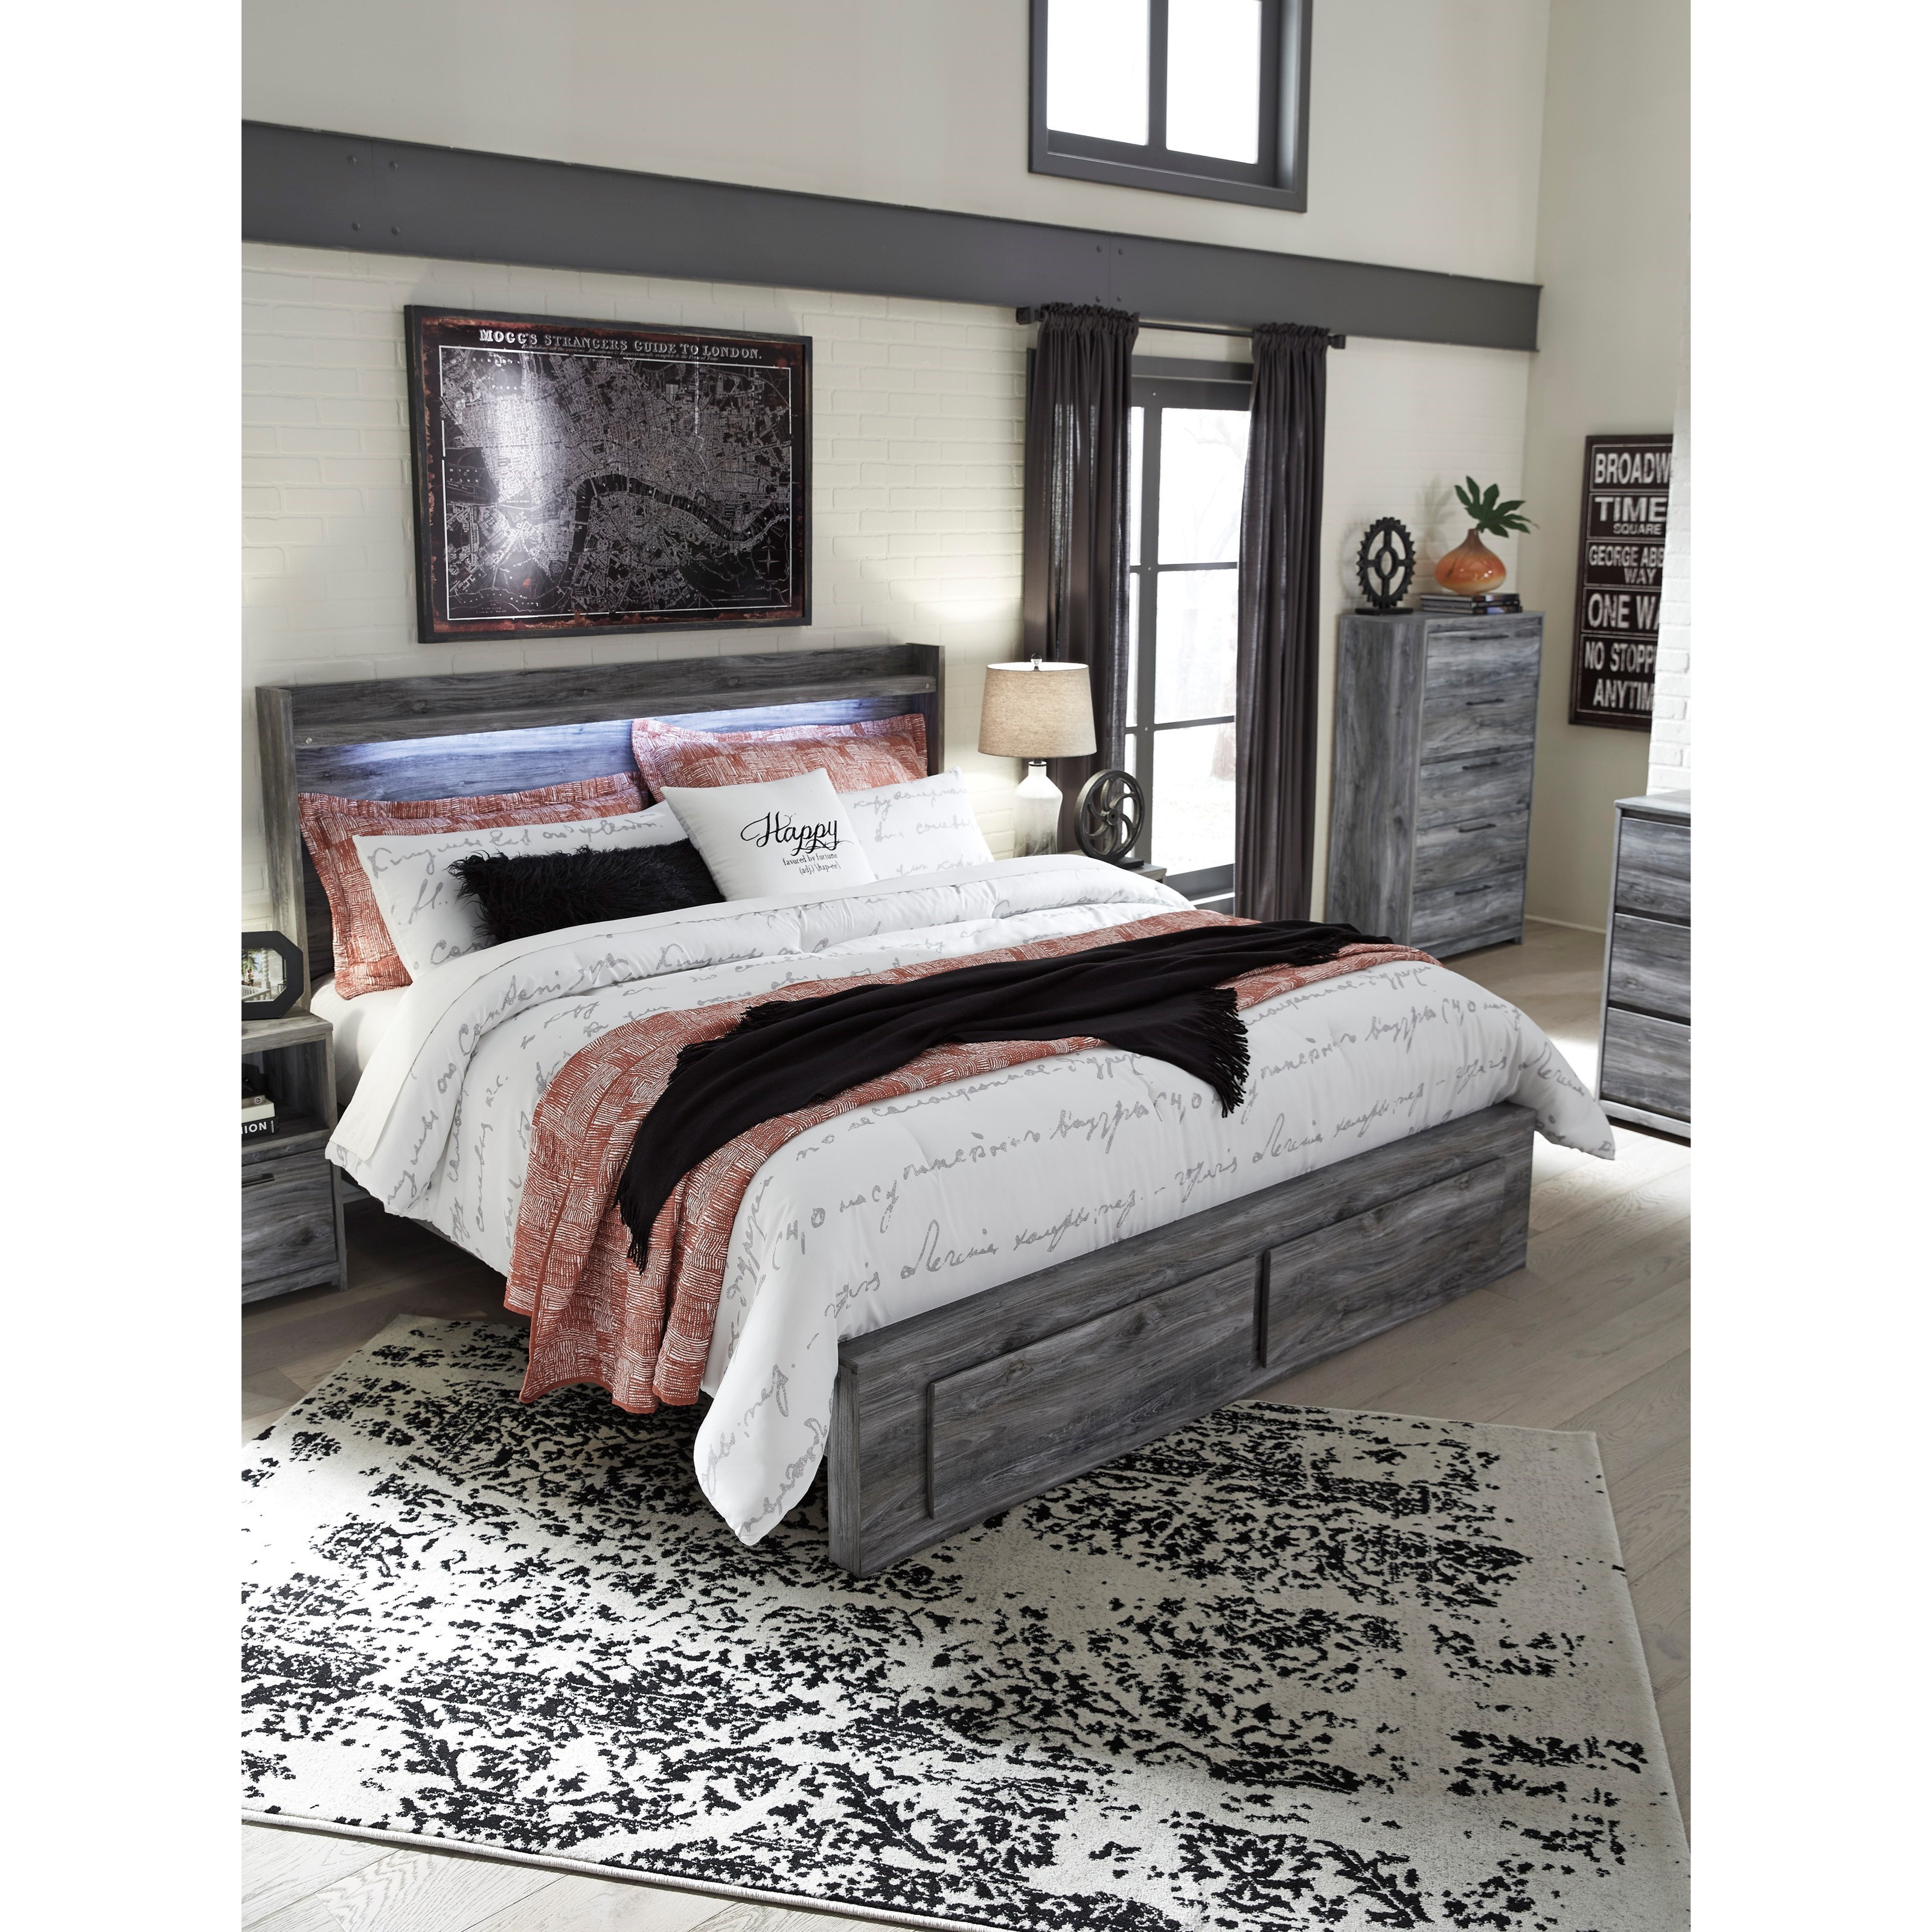 Ashley Furniture 14 Piece Package: Signature Design By Ashley Baystorm King Panel Bed With